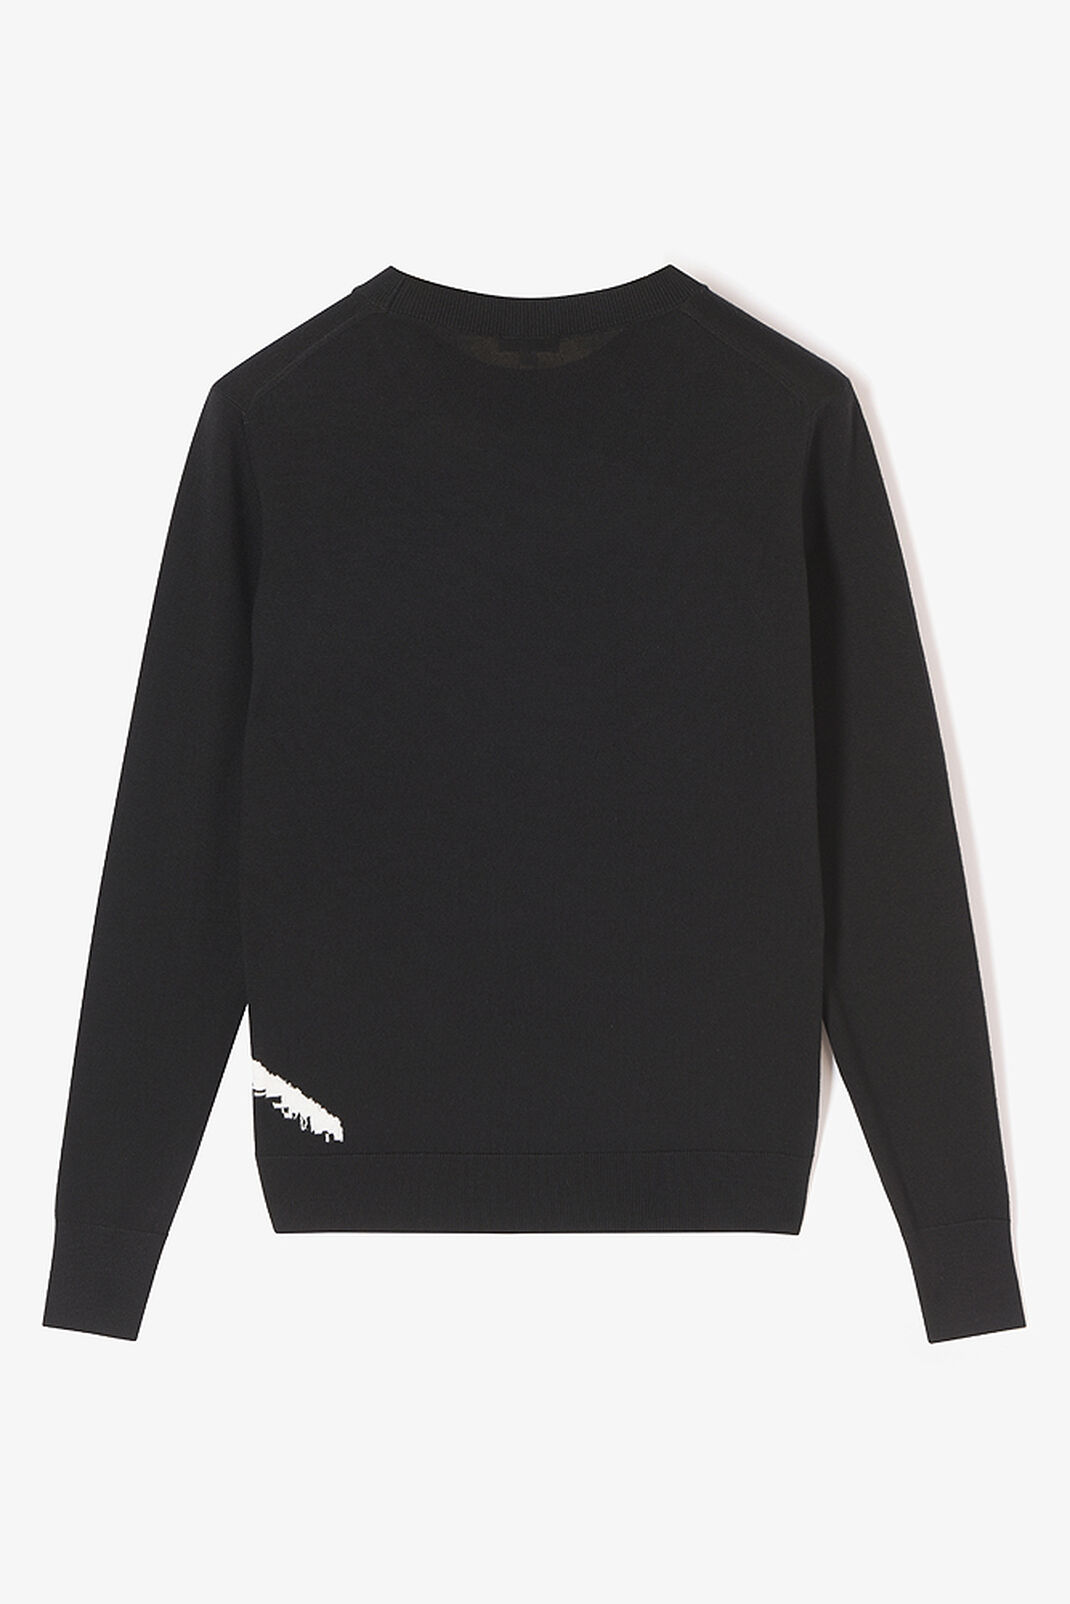 BLACK KENZO Signature sweater for women